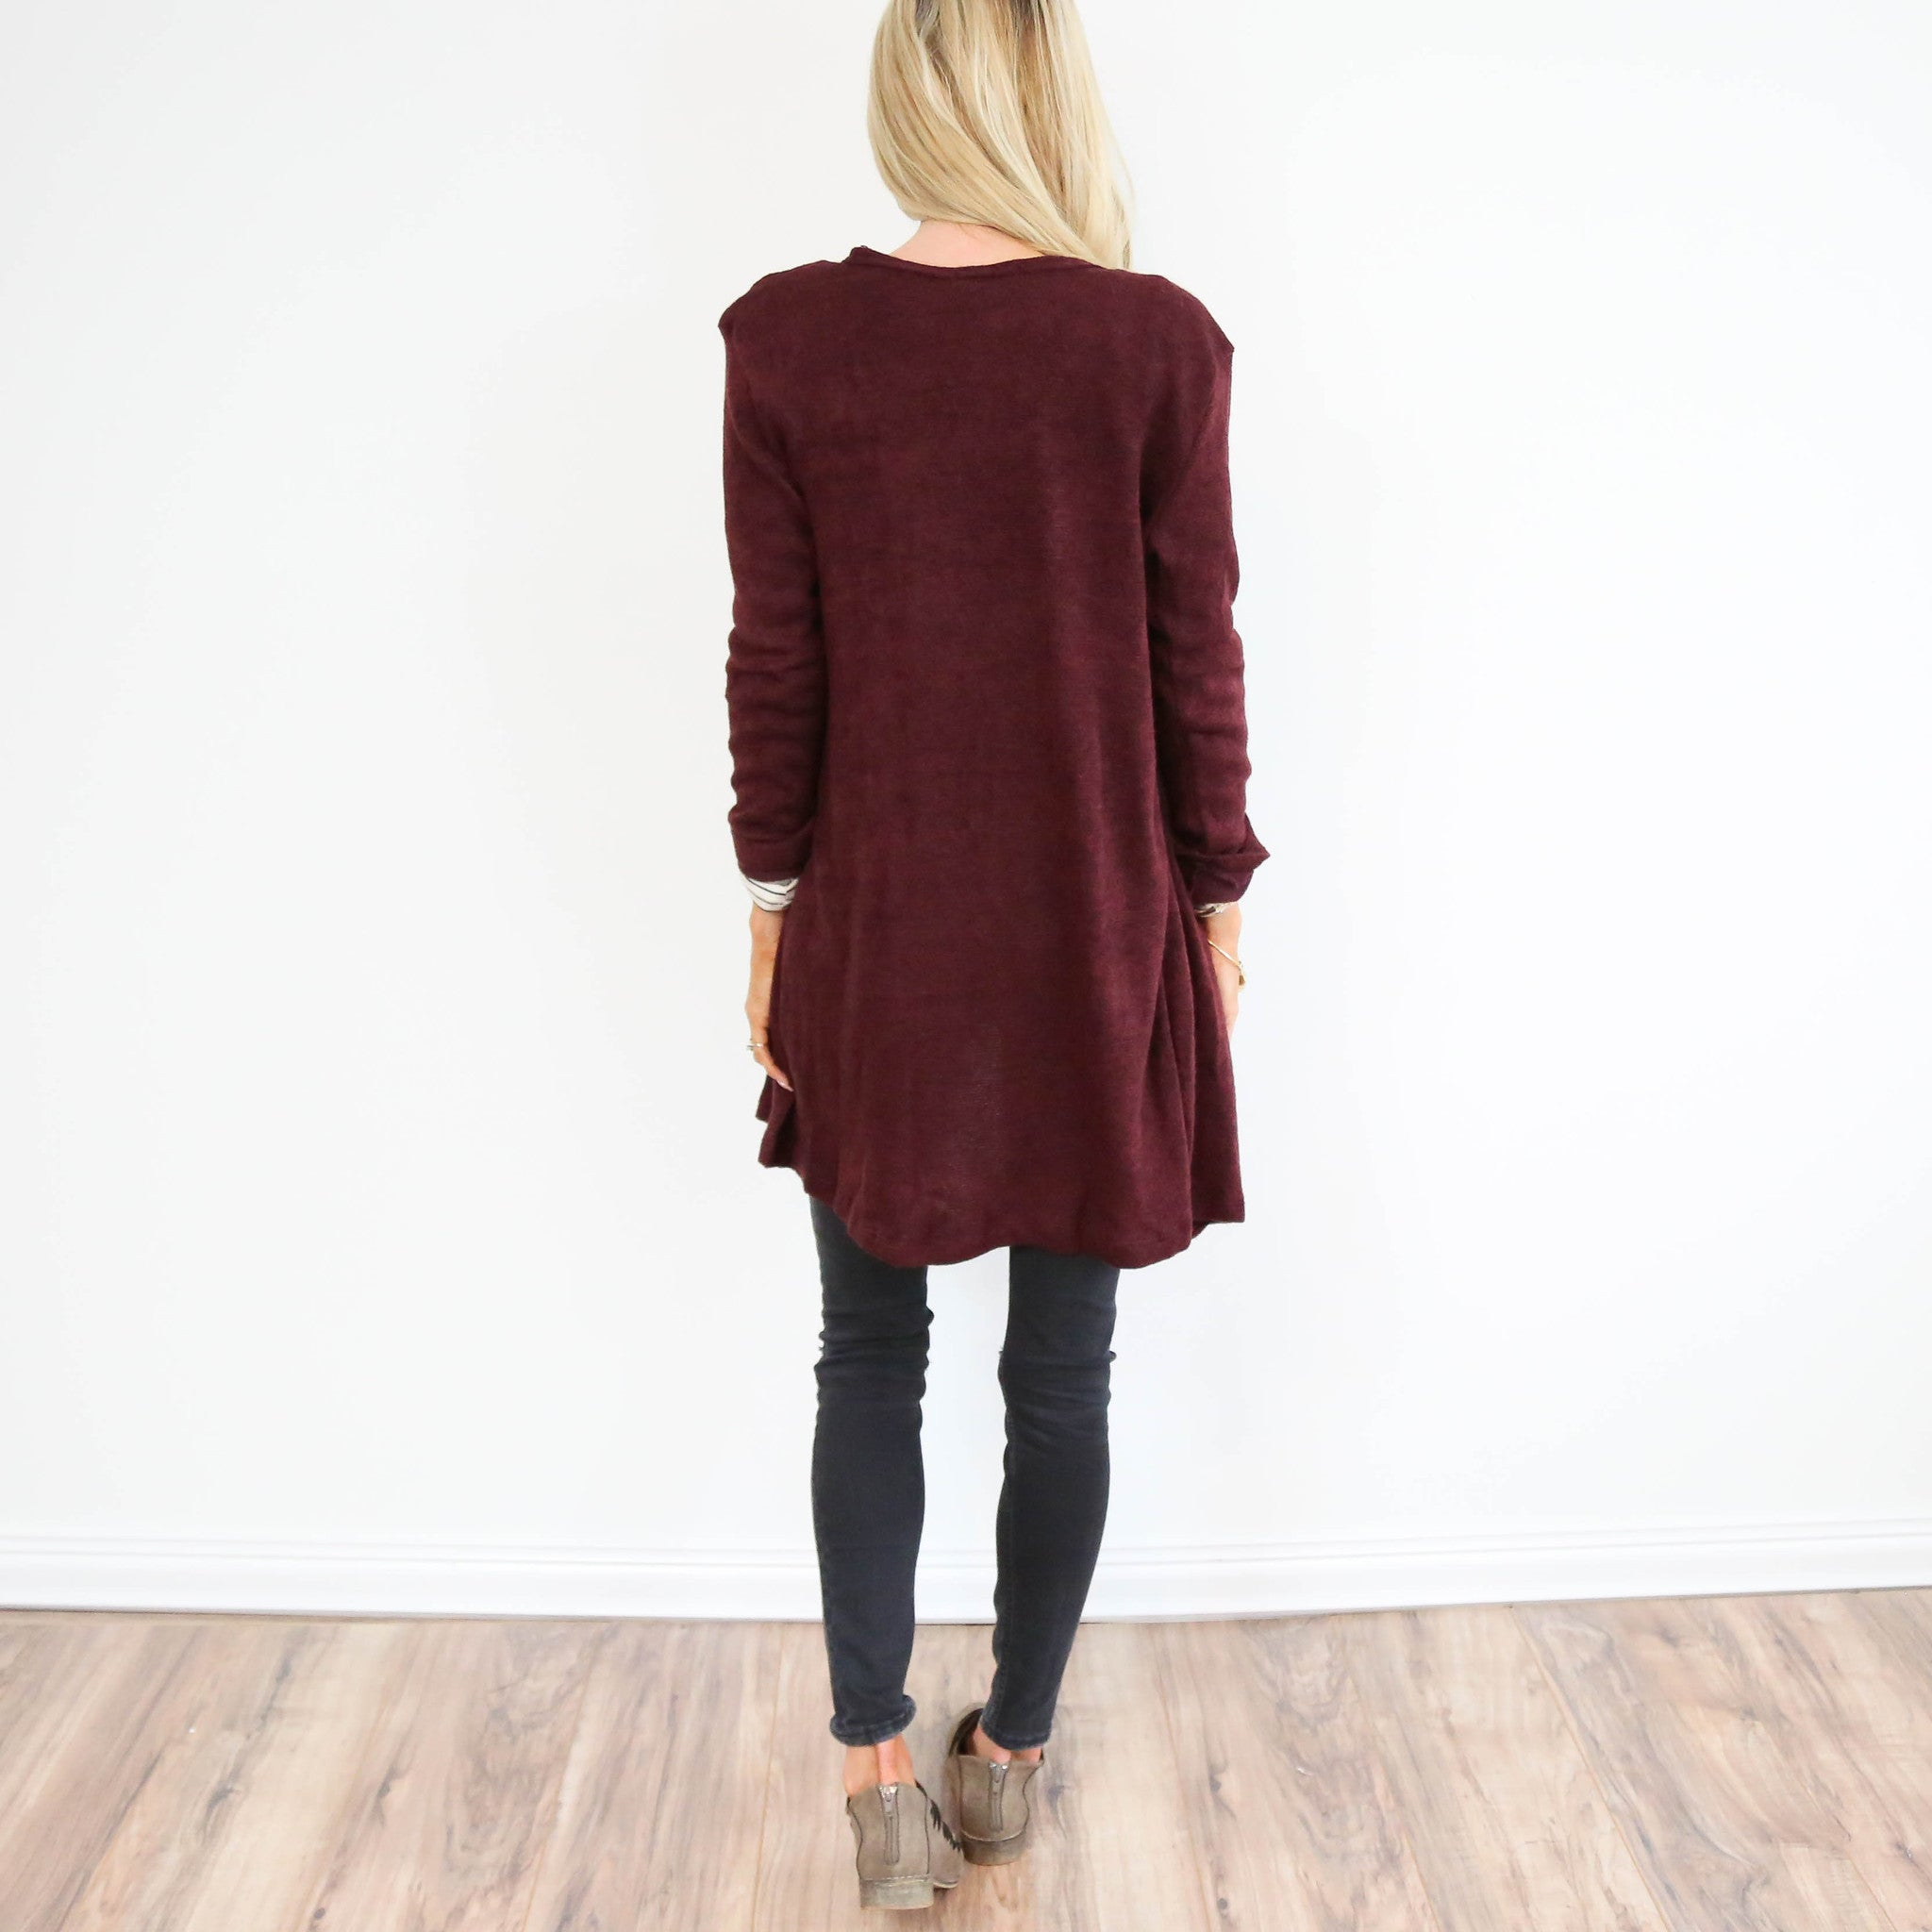 Claire Burgundy Cardigan